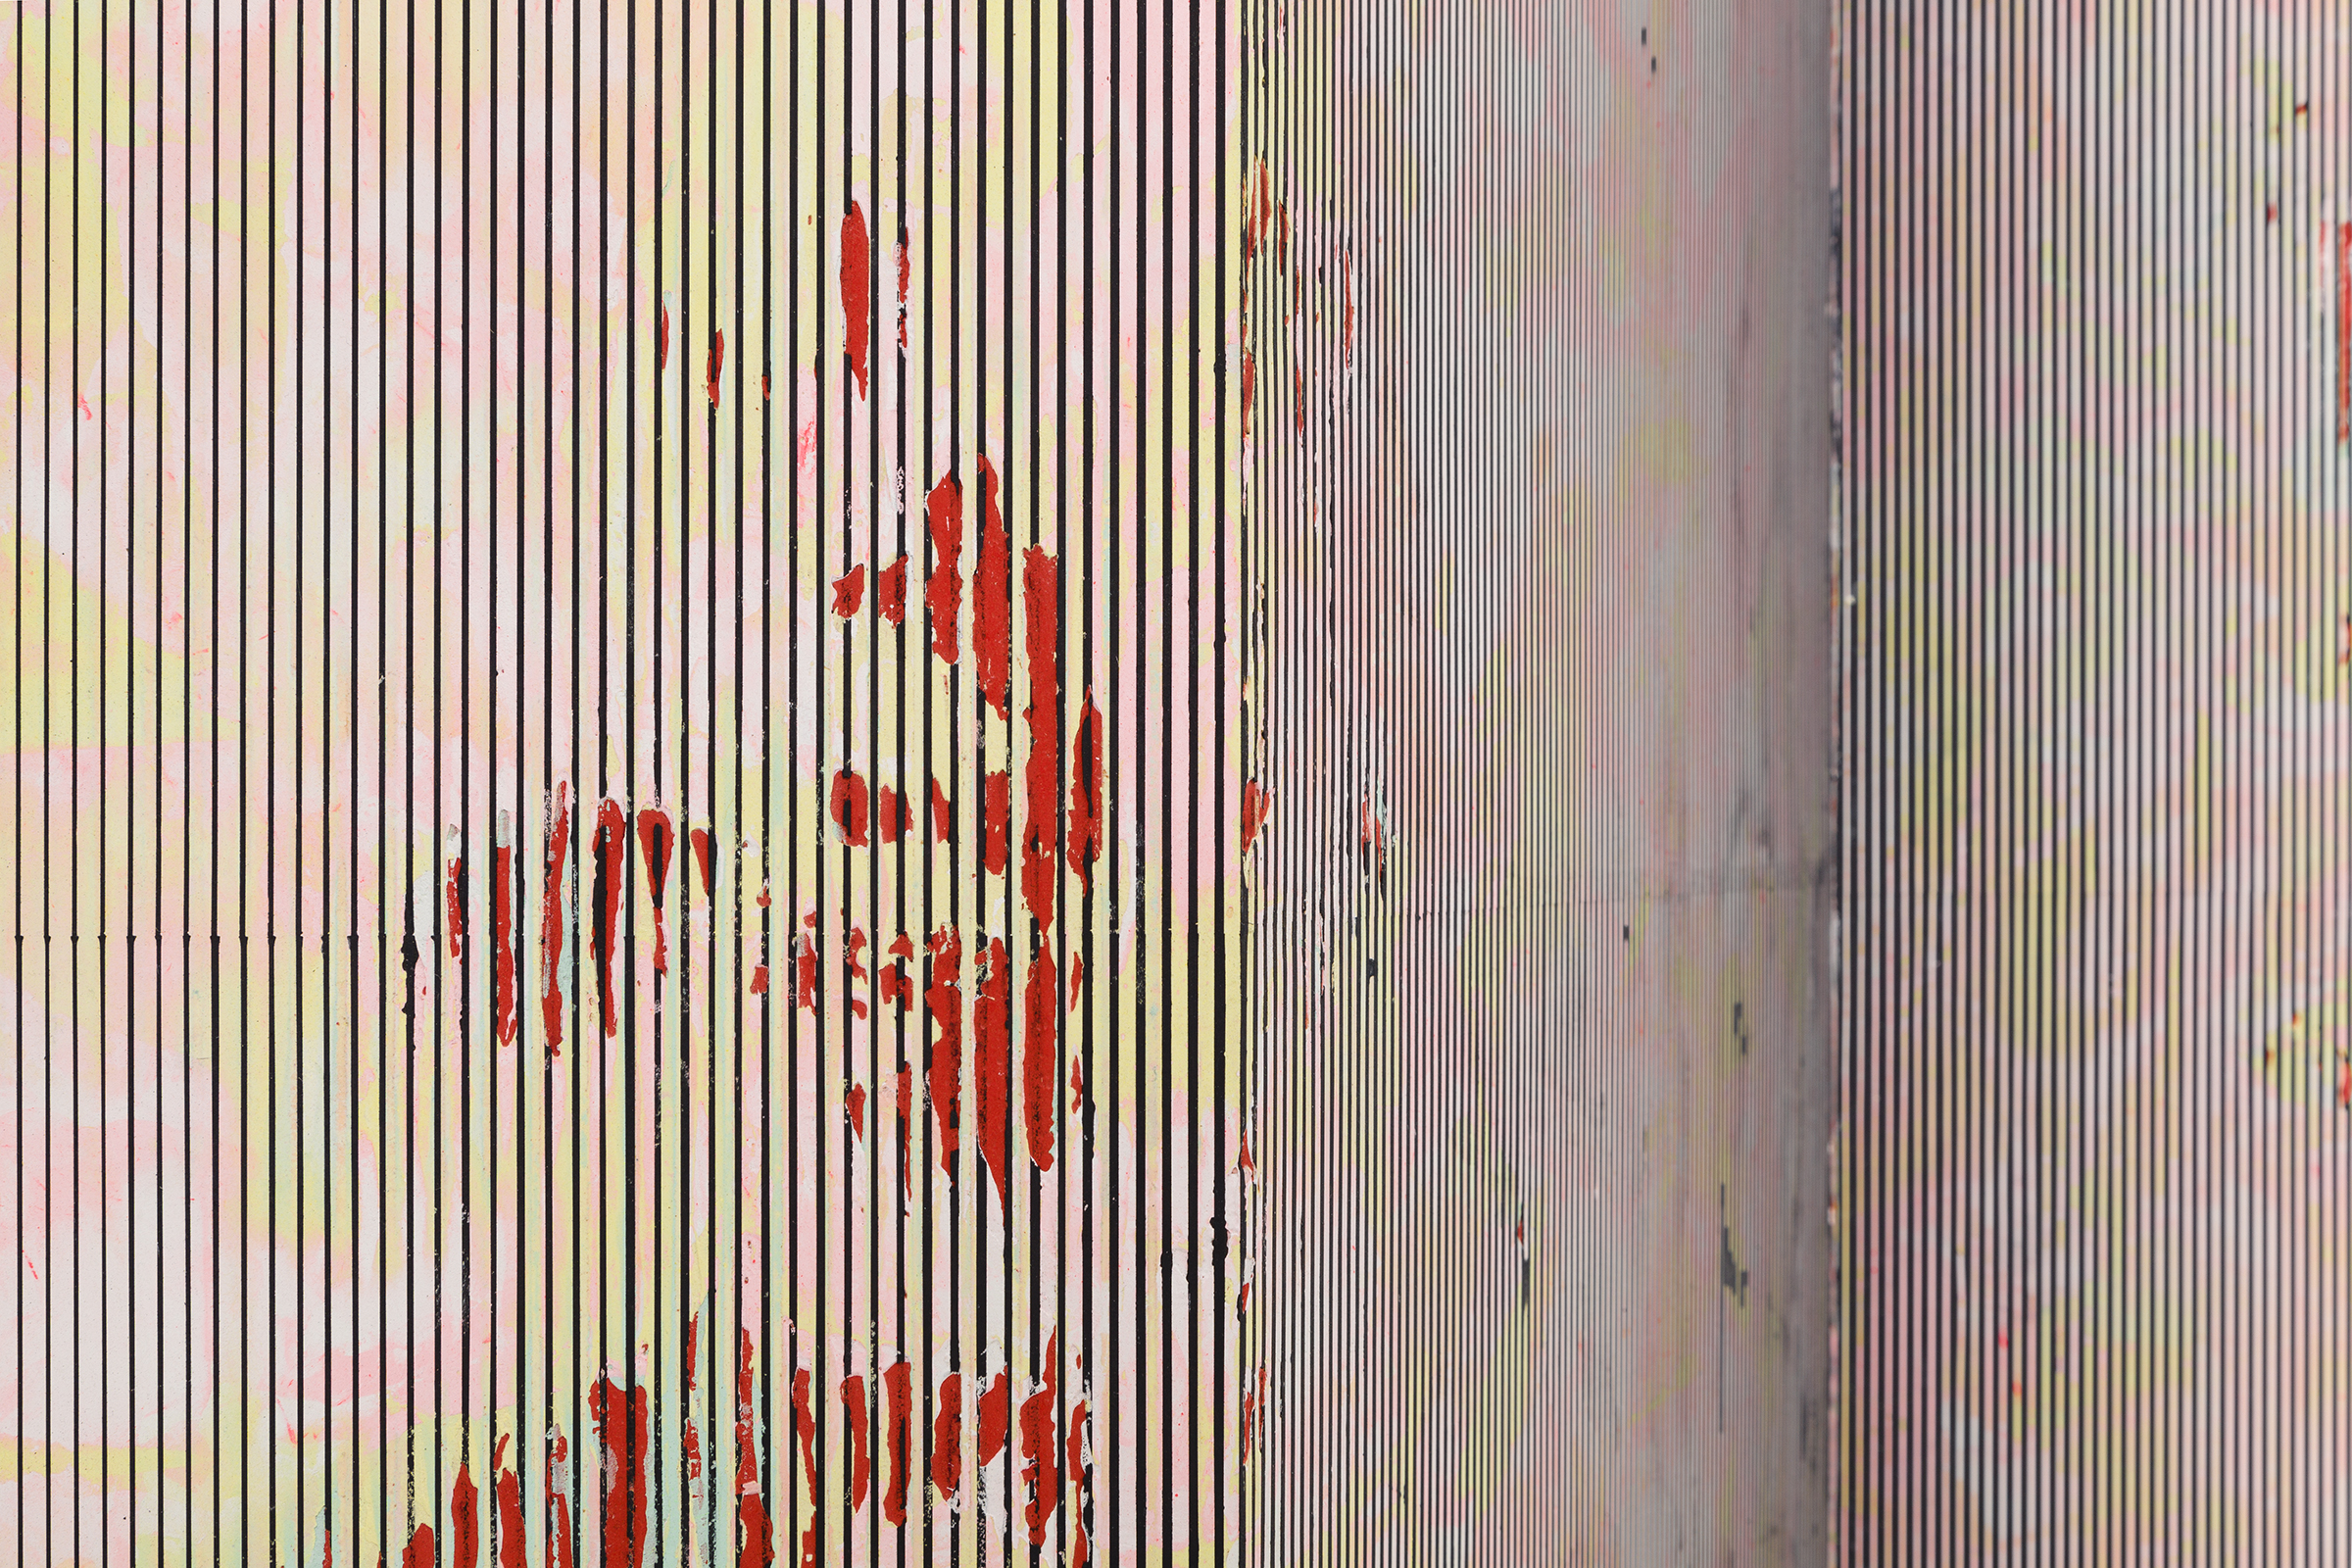 Nicolas Roggy, Untitled  (detail), 2014,primer, modeling paste, pigment on PVC,110.2 x 80.8 x 12.2 in